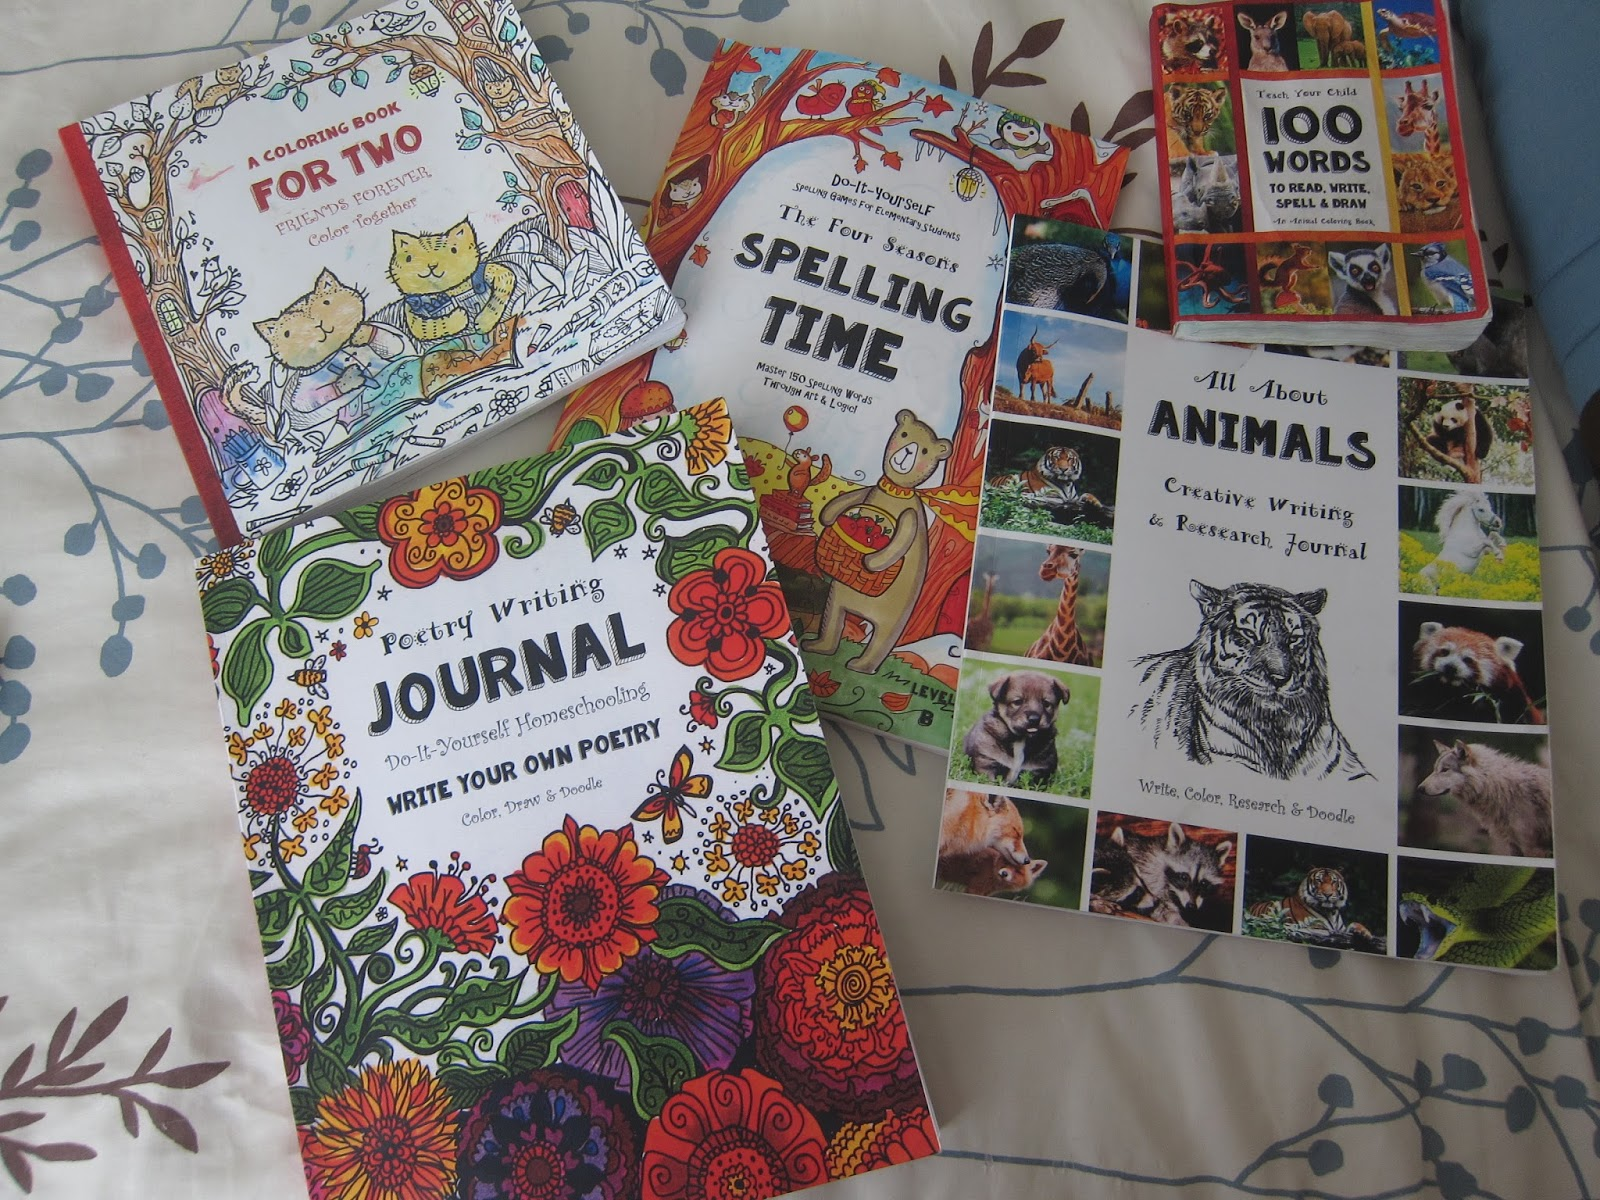 The idea book thinking tree books in categories ideas for using the spelling books seasons spelling time teach your child 100 words fun schooling spelling not pictured and spelling time master the top solutioingenieria Gallery